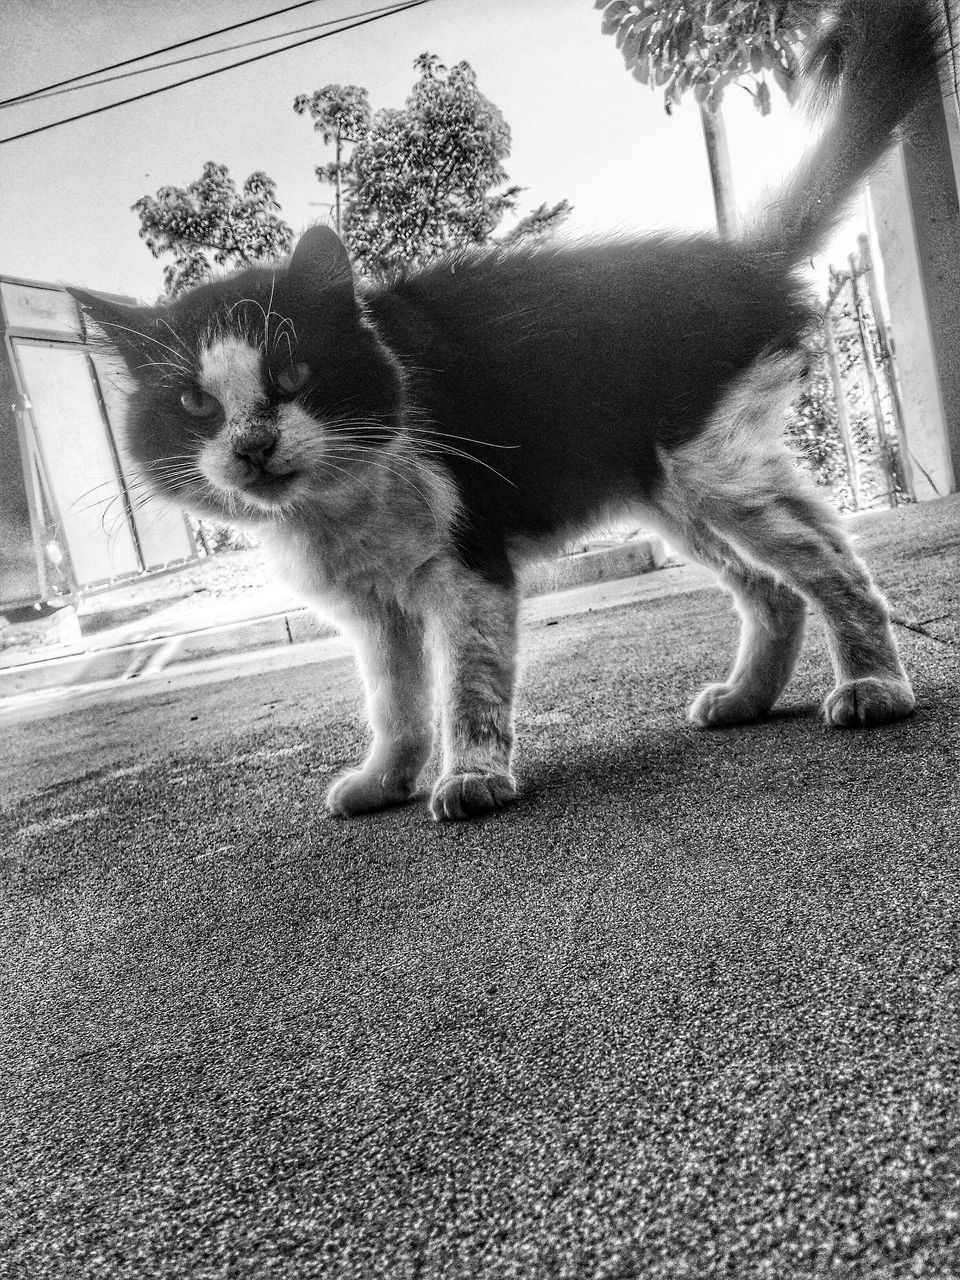 domestic cat, pets, domestic animals, feline, cat, animal themes, one animal, mammal, whisker, no people, day, outdoors, portrait